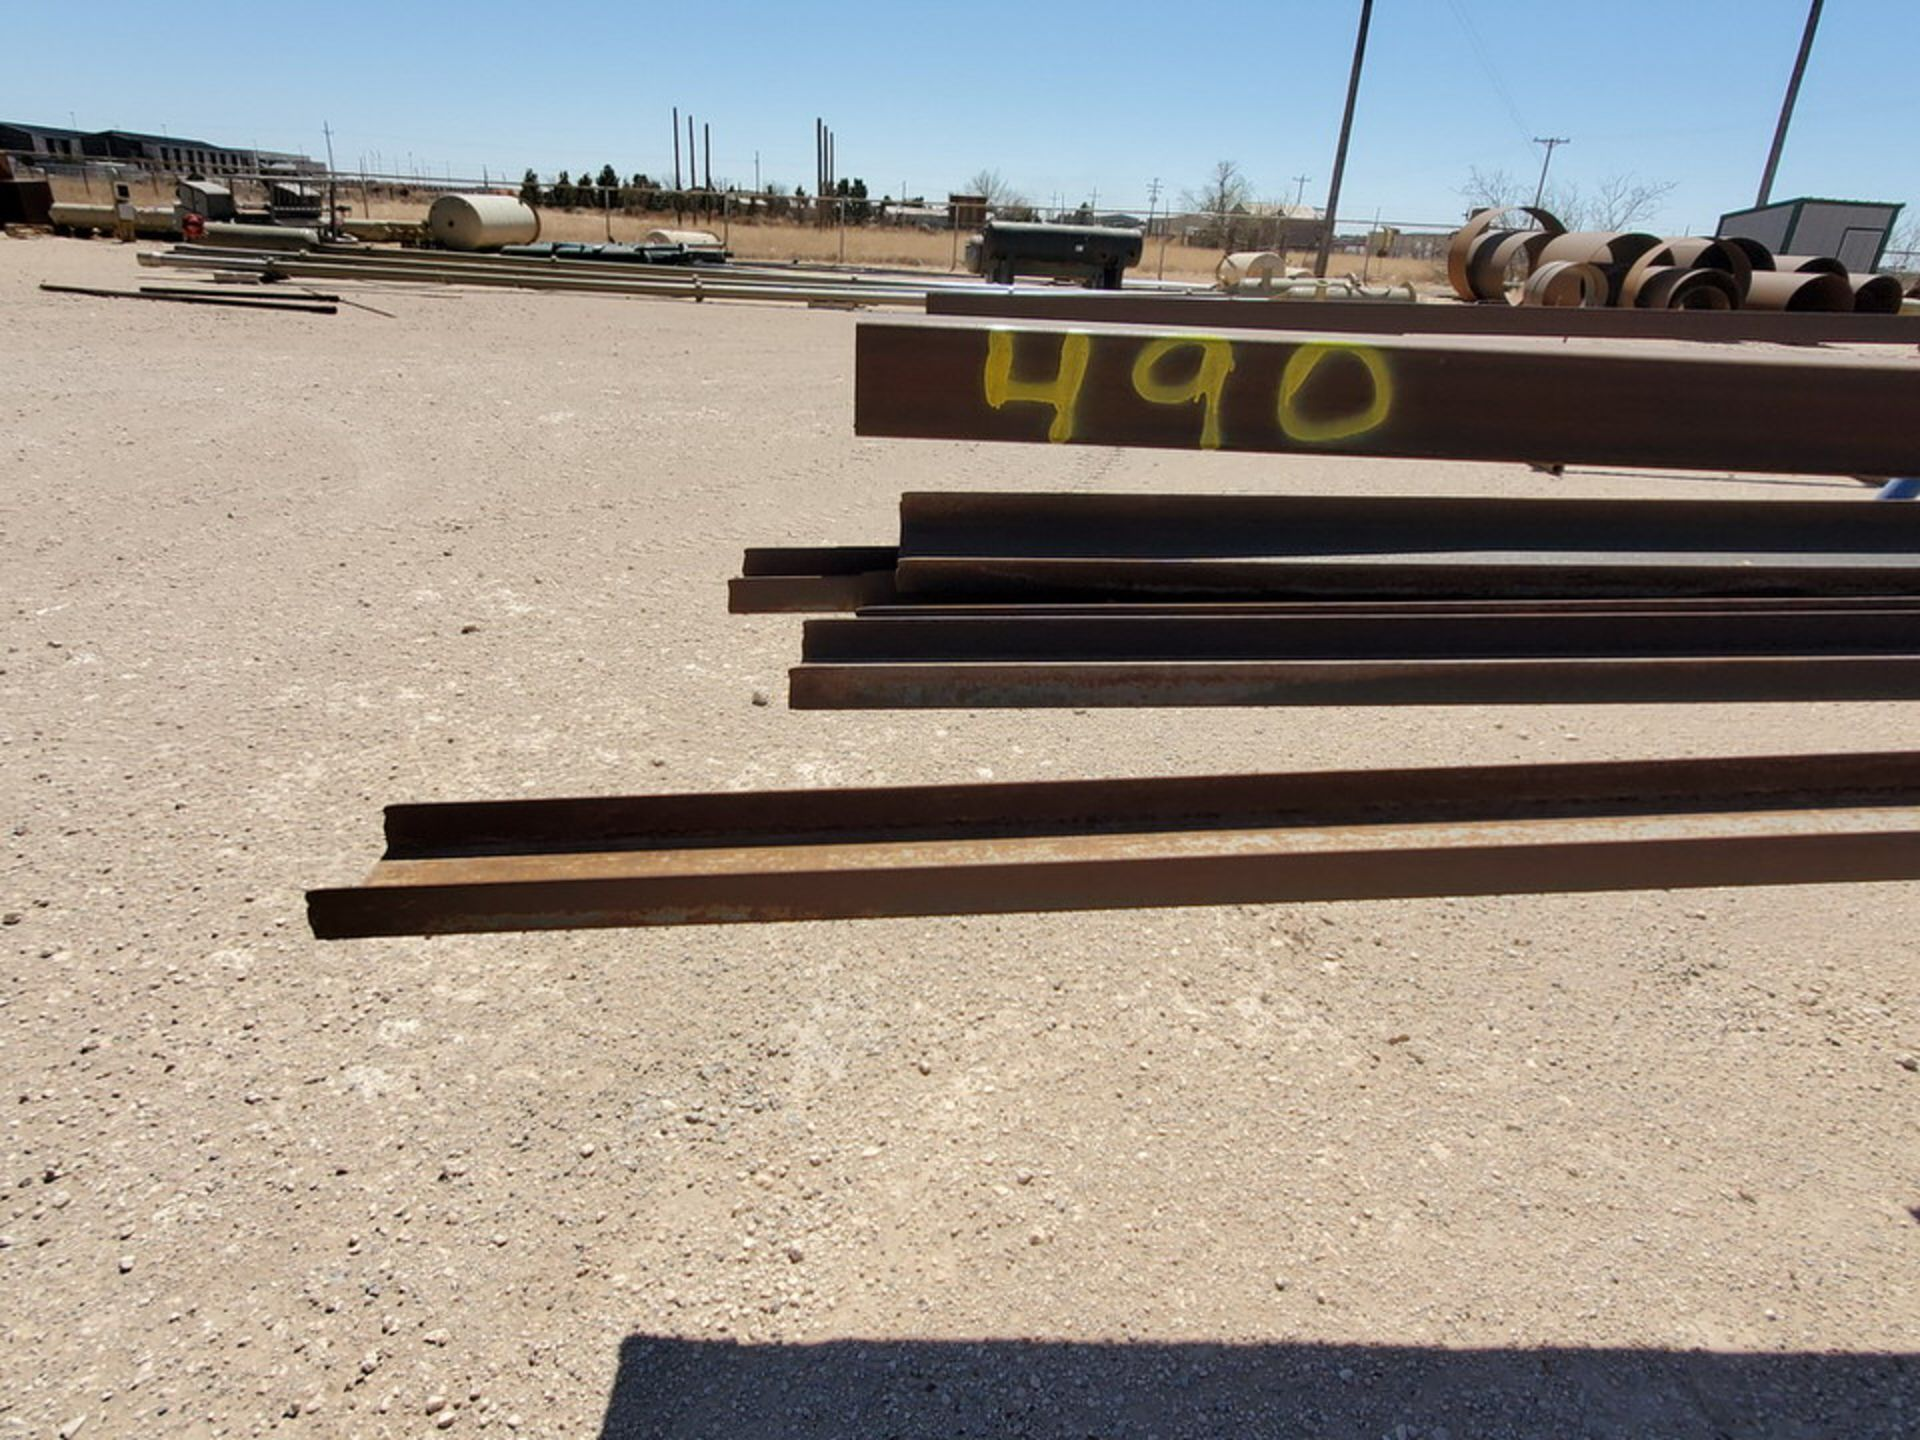 "Assorted Matl. To Include But Not Limited To: Angle, Channel, Sq. Tubing, Rect. Tubing, etc., 6"" - - Image 4 of 16"